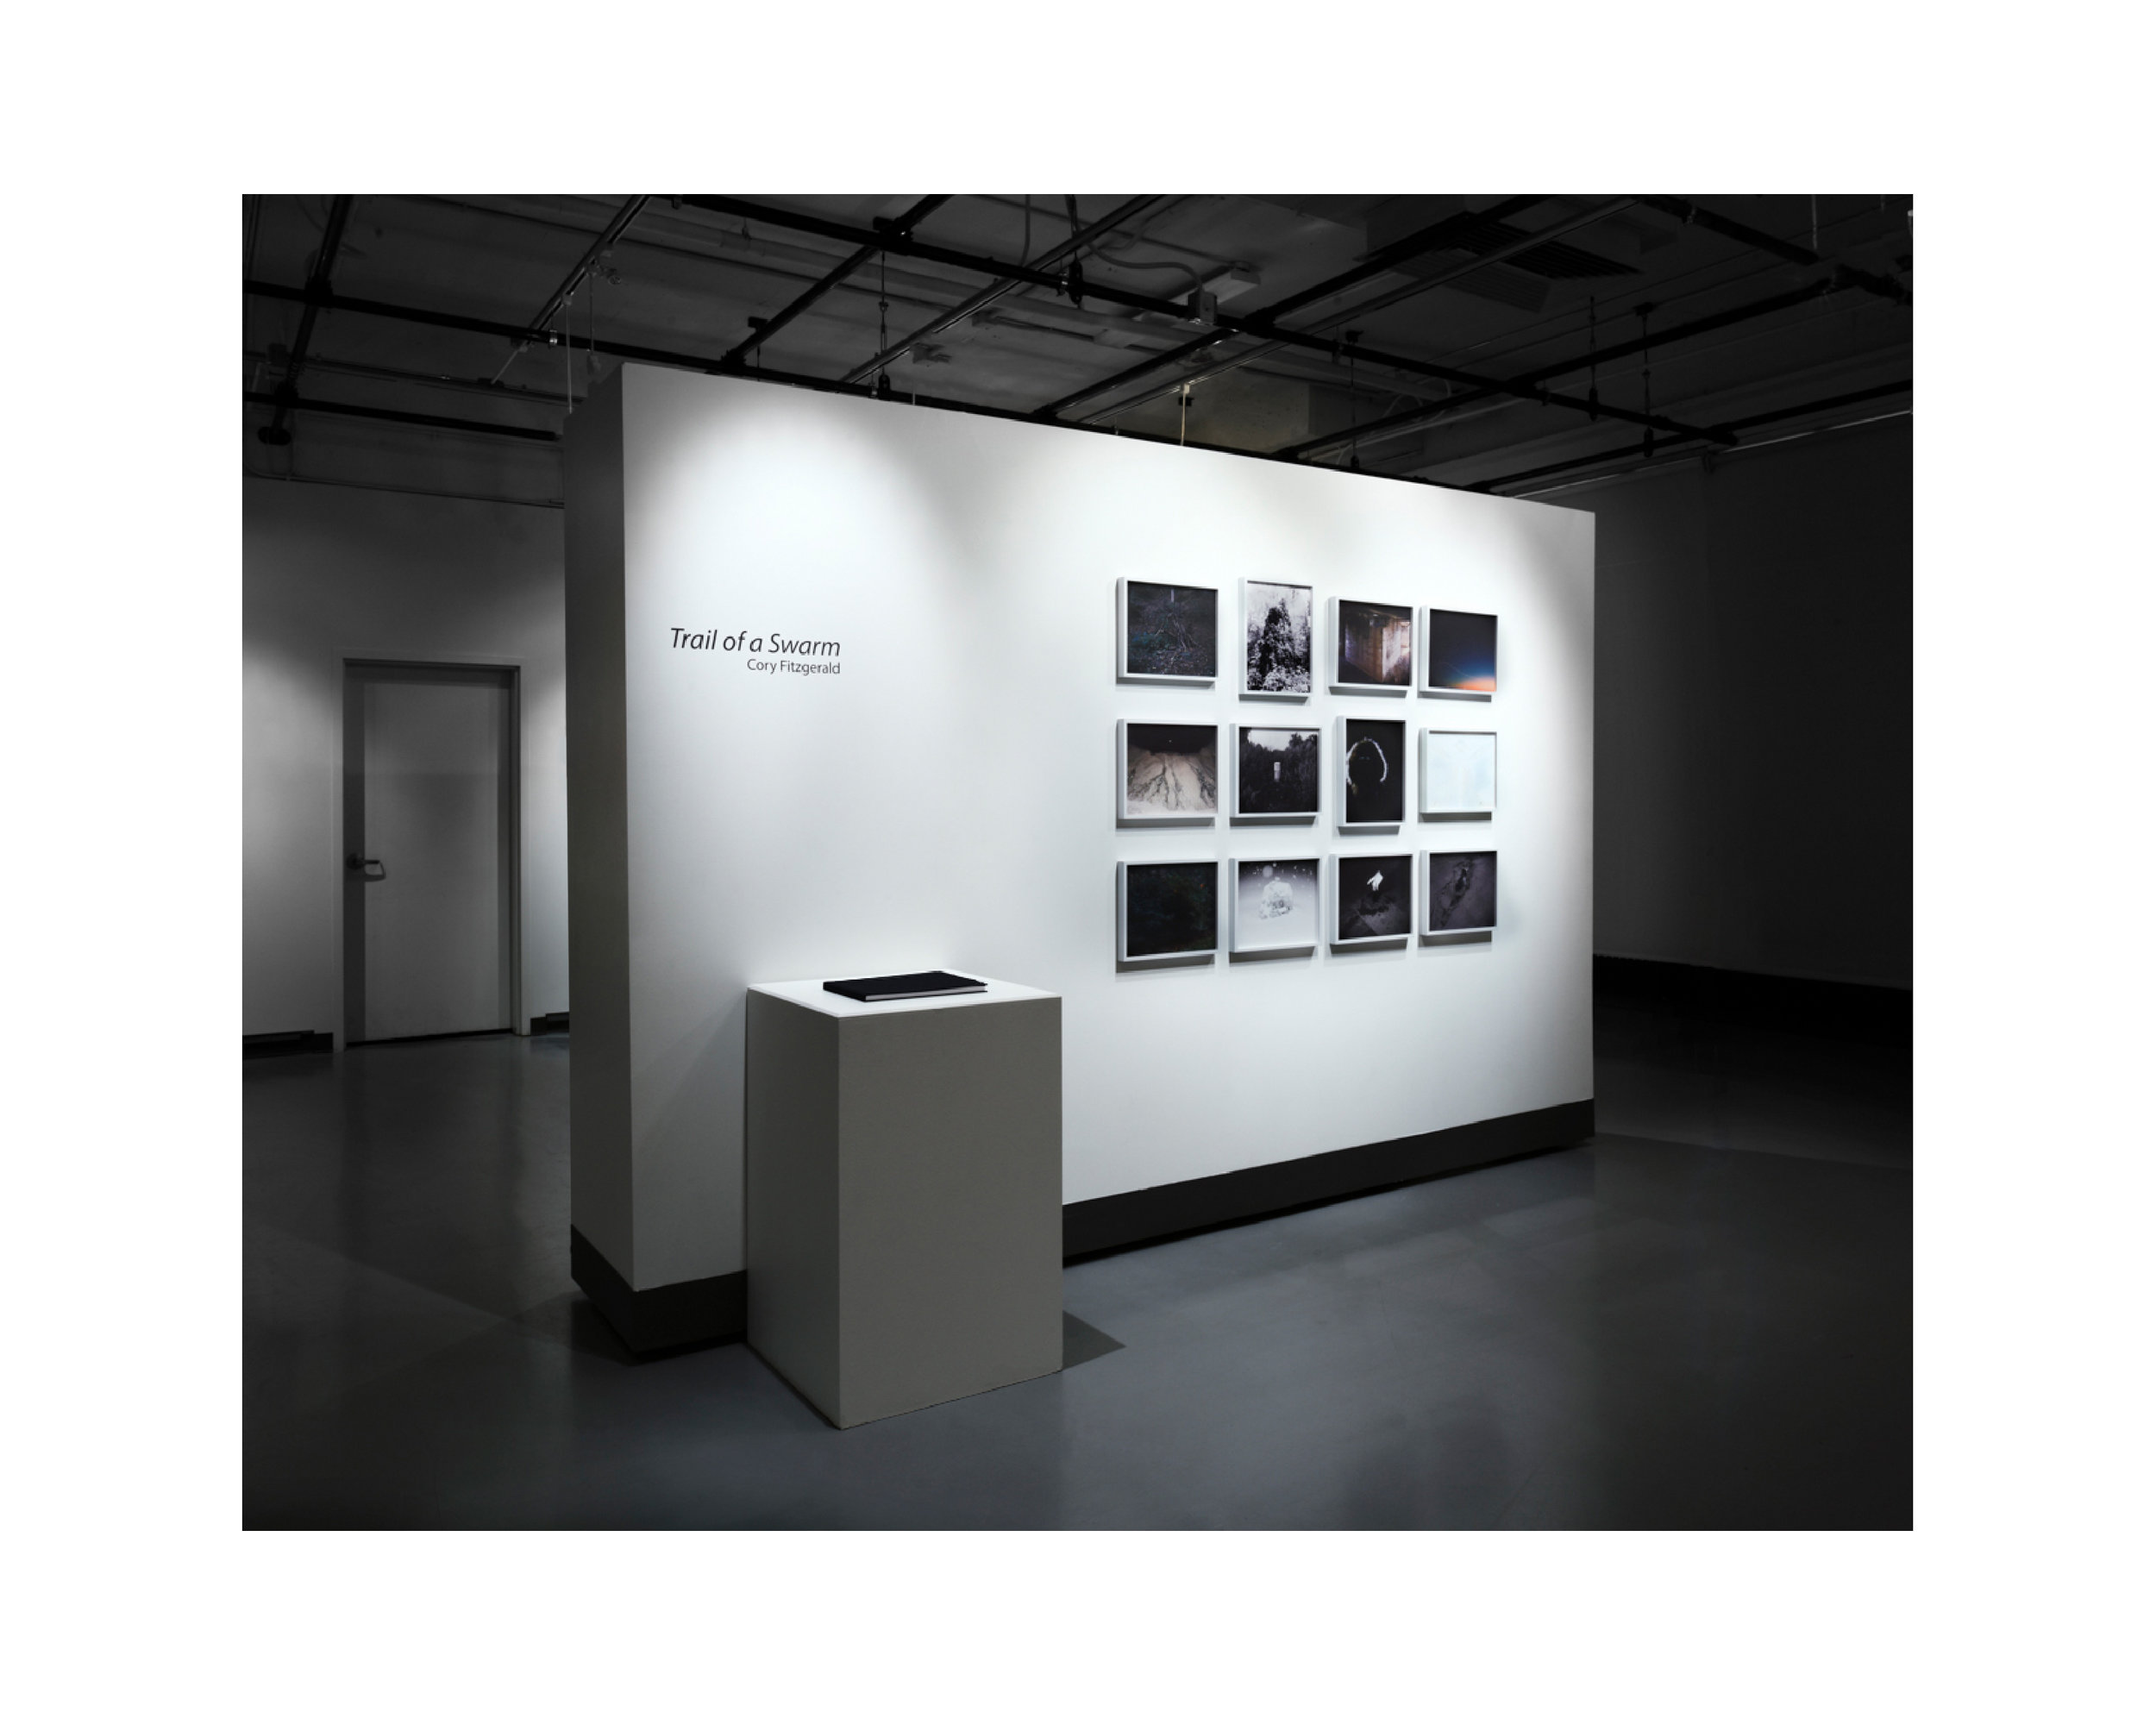 a display of photographs